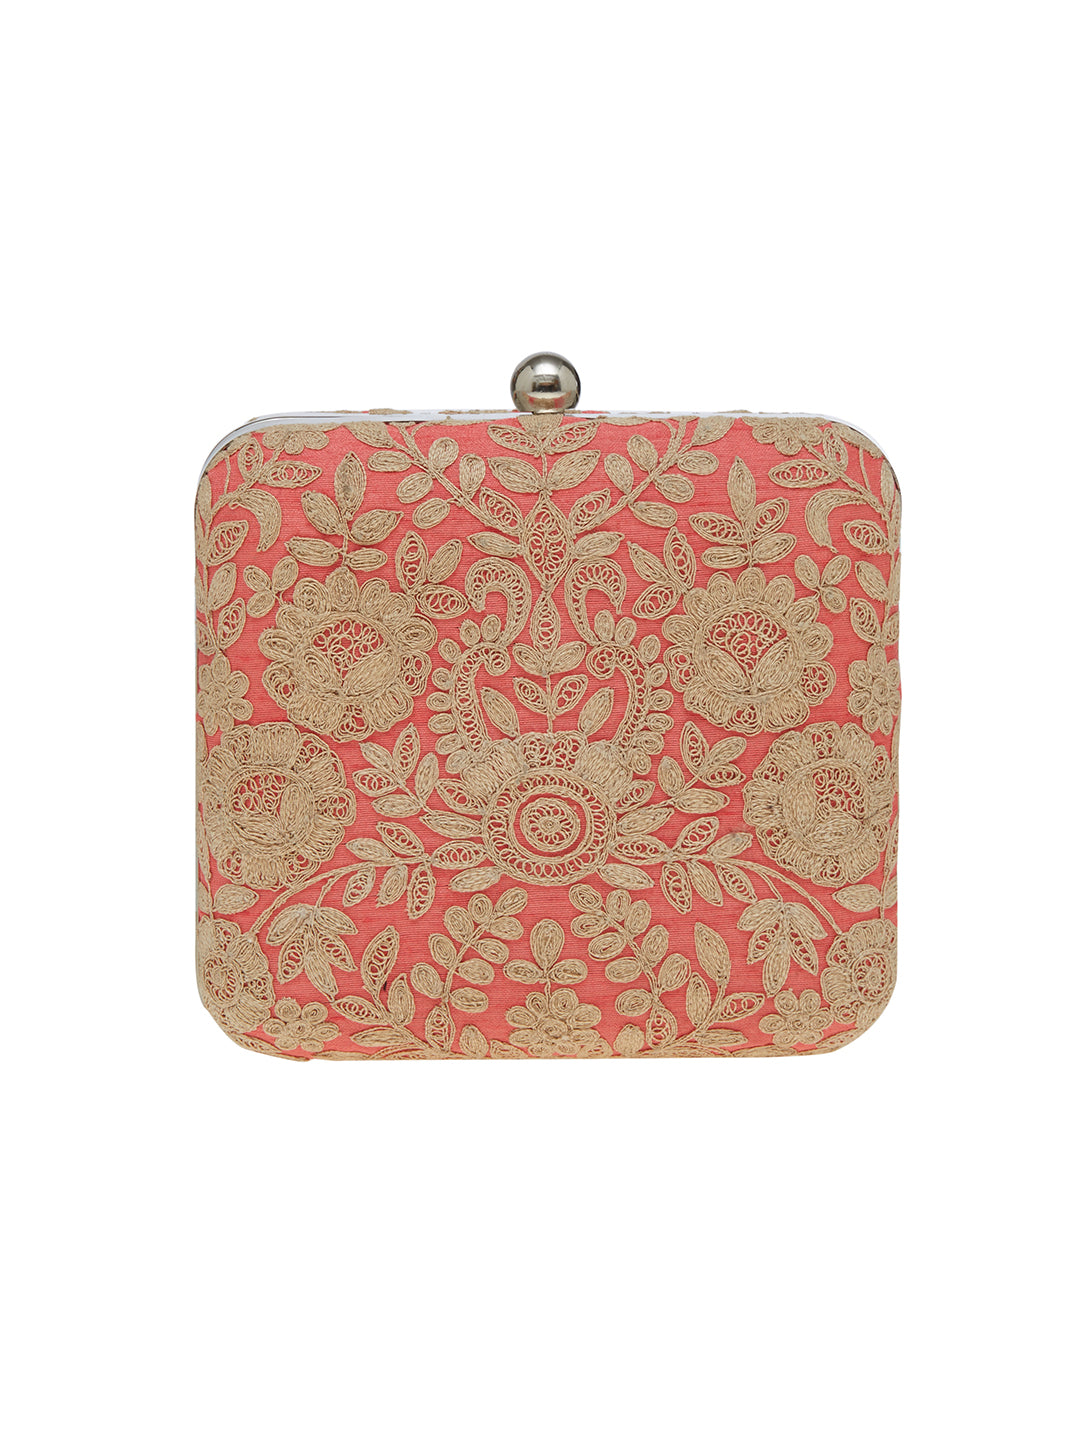 For women who love to flaunt classy accessories, this candy pink clutch from TARUSA is a must-buy. Crafted from fabric, this clutch is durable and exhibits a embroidered  pattern. Featuring a chain sling, this box clutch will complement most of your party attire.